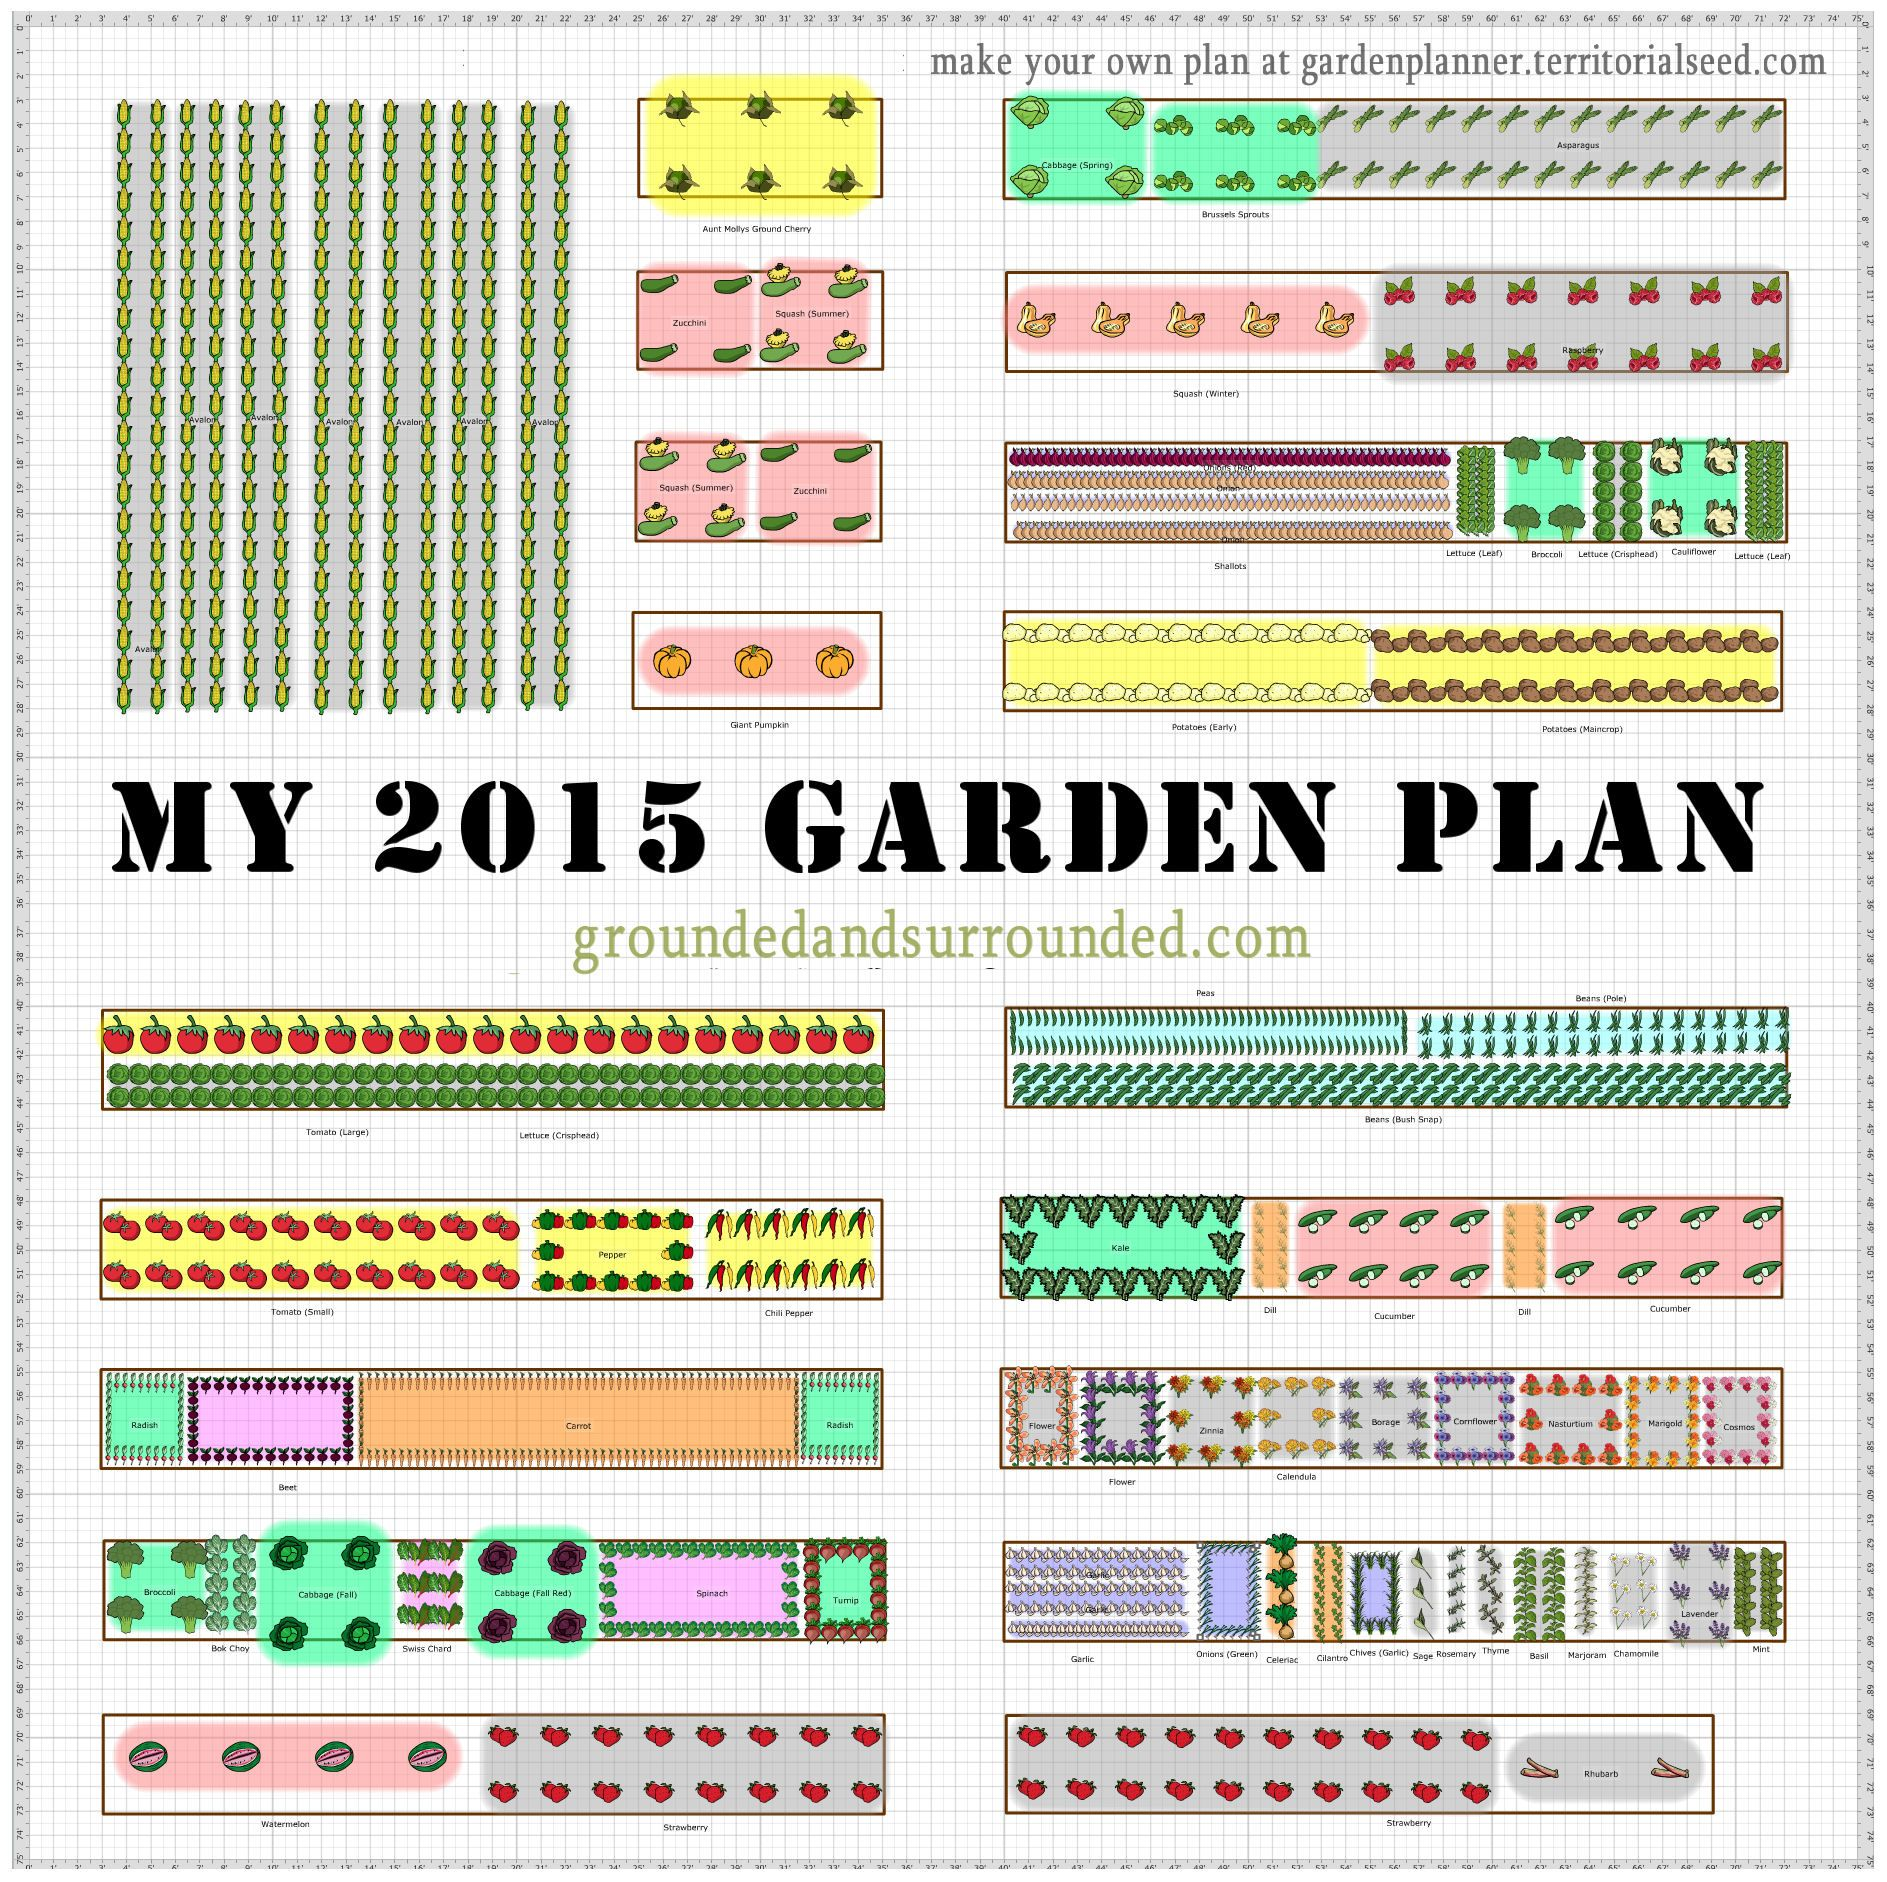 Superieur I Have Often Wished That More Gardeners Shared Their Large Vegetable Garden  Plans Online. This